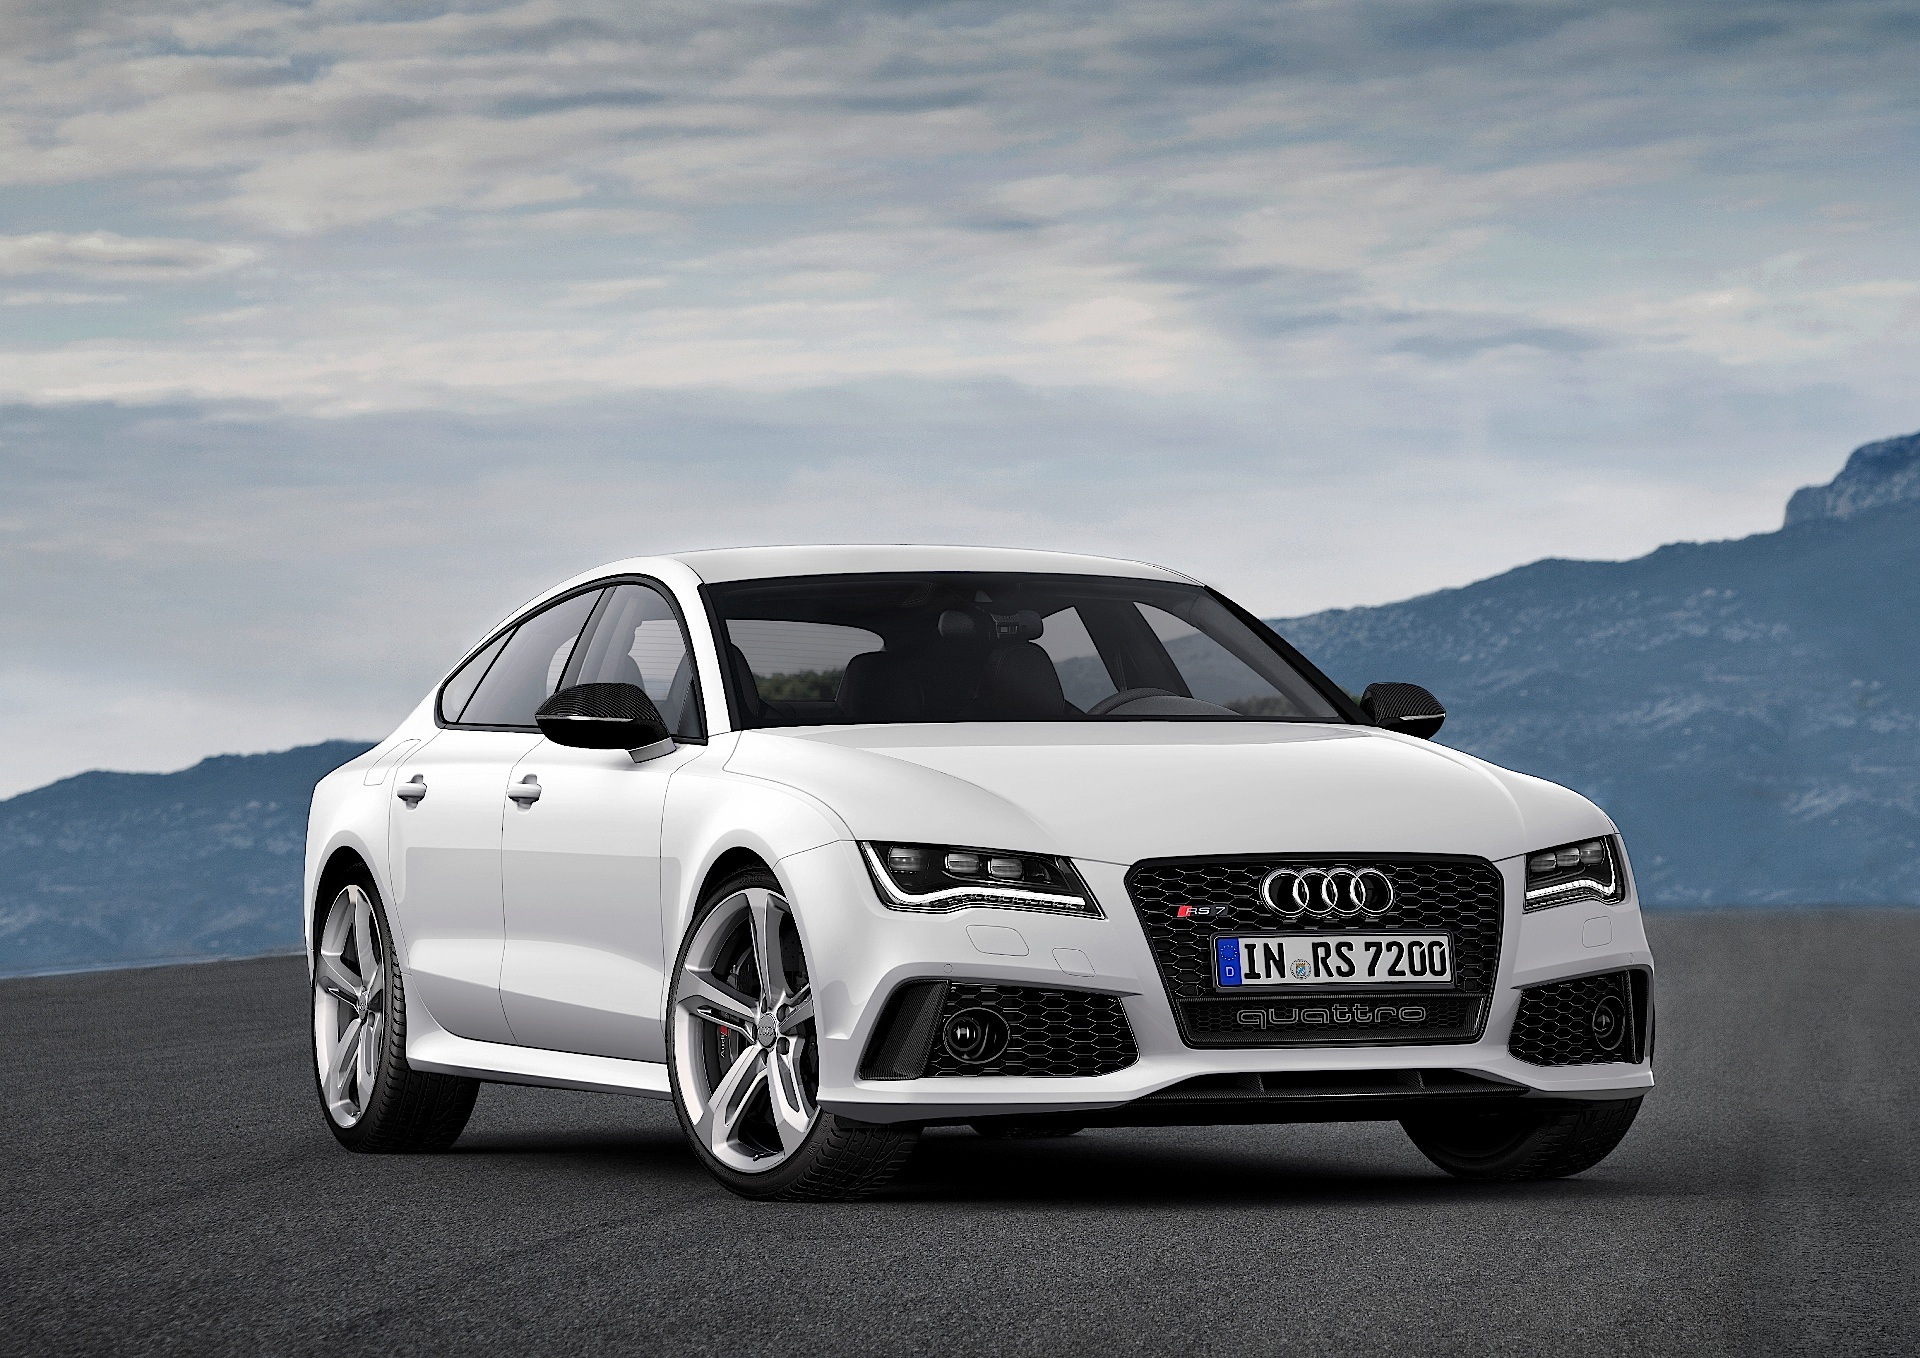 rs7 – Car Wallpapers For The Android,Iphone 6 ,Samsung S5 ,Desktop ,Mobile 14 Wallpaper